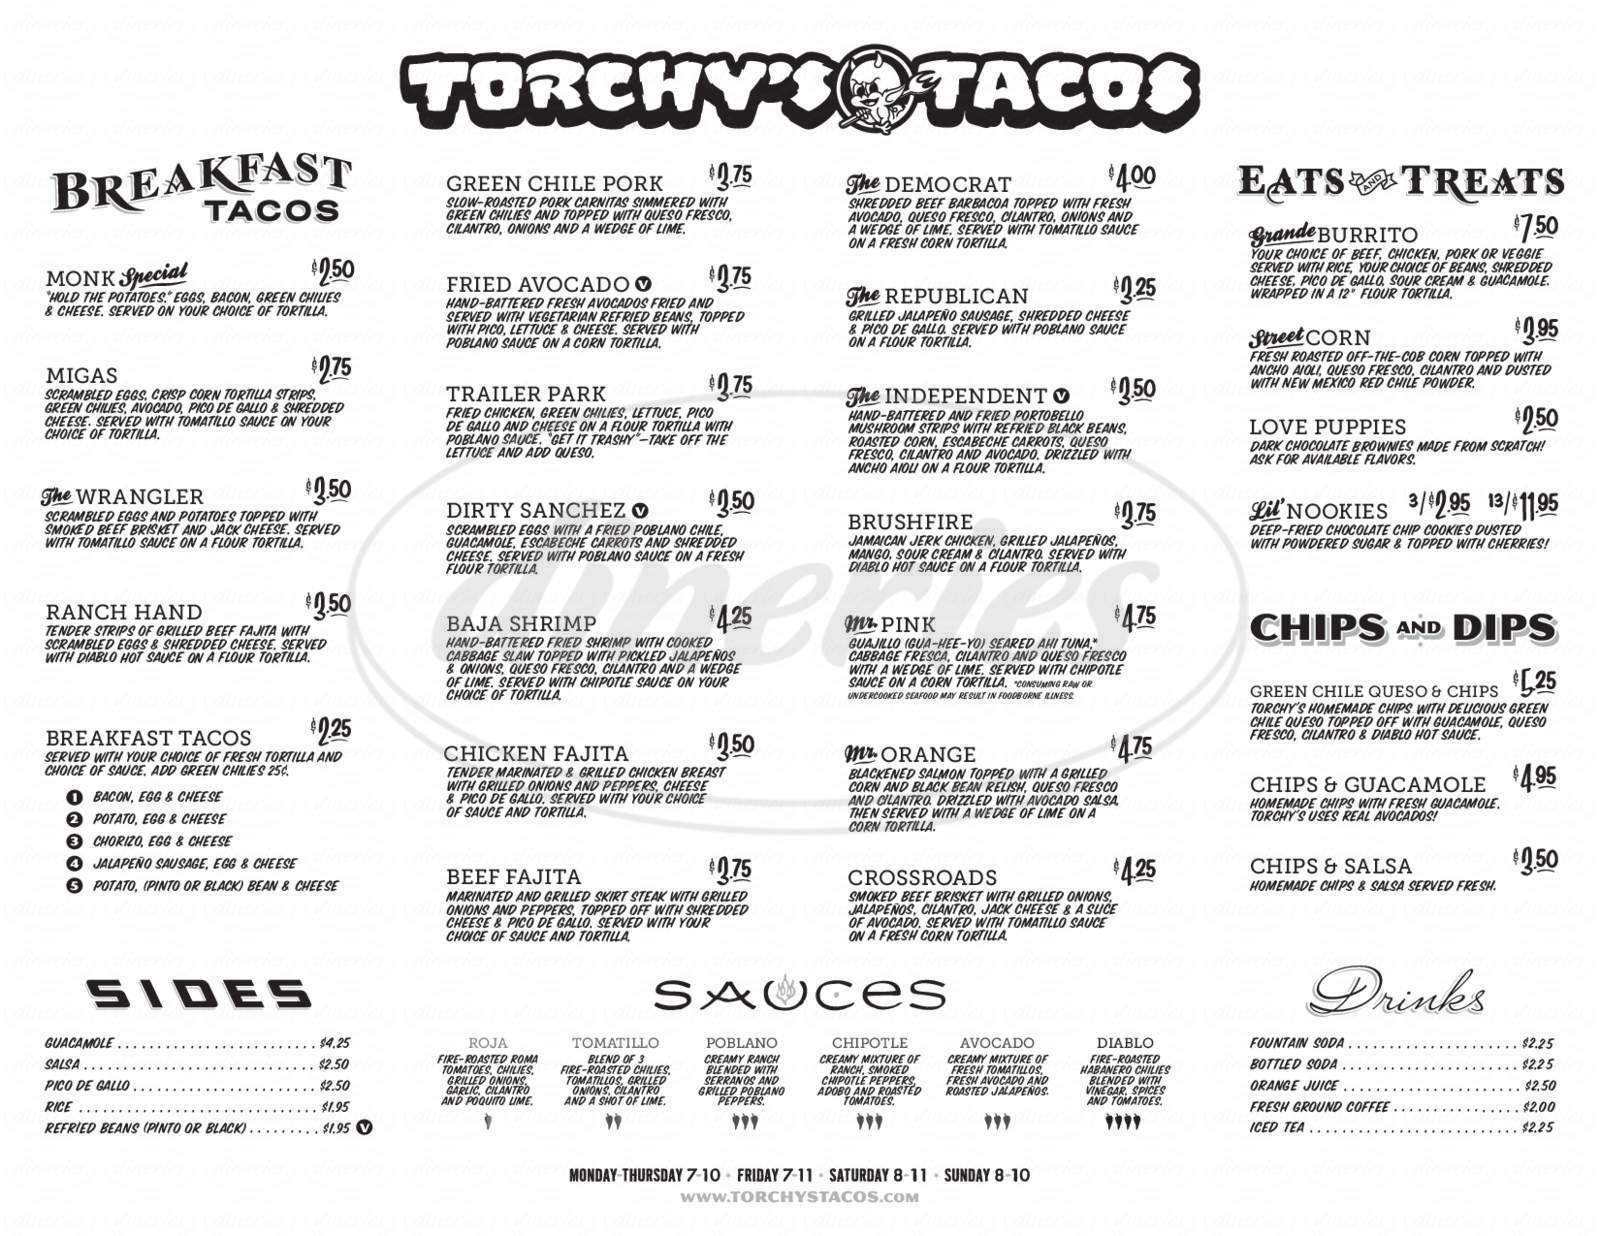 menu for Torchy's Tacos